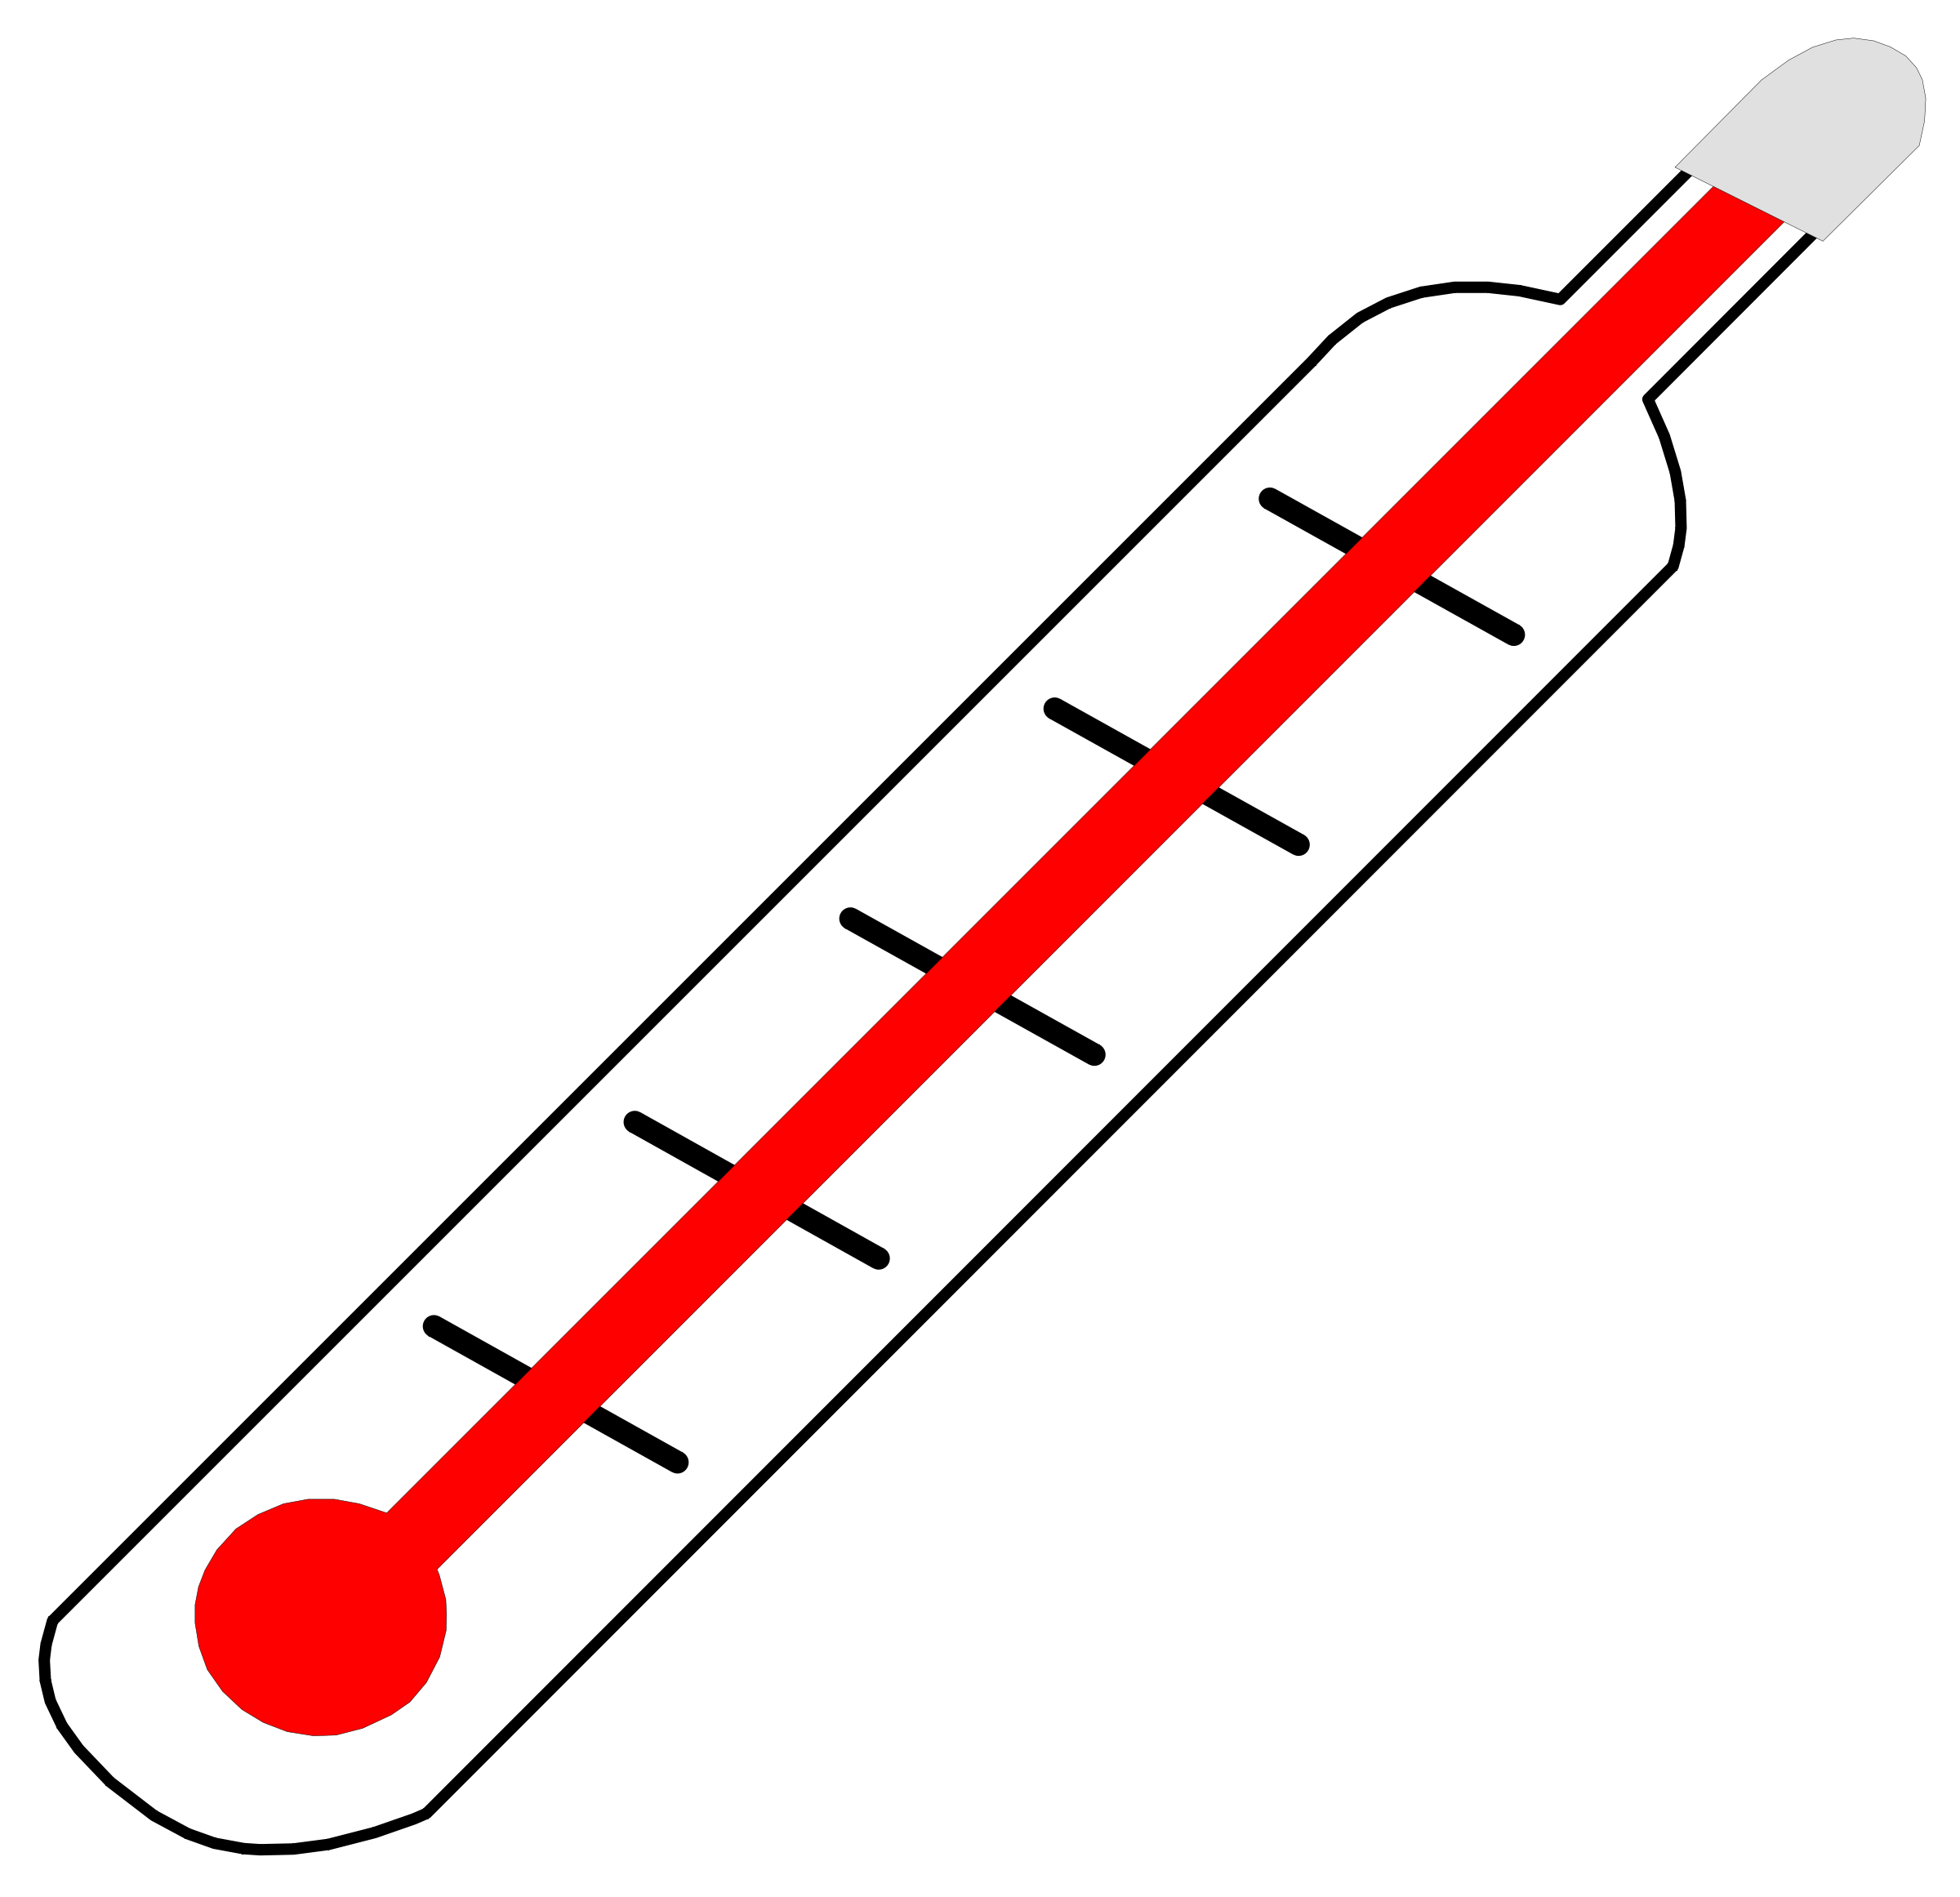 2400x2323 Thermometer Clip Art 3 Image